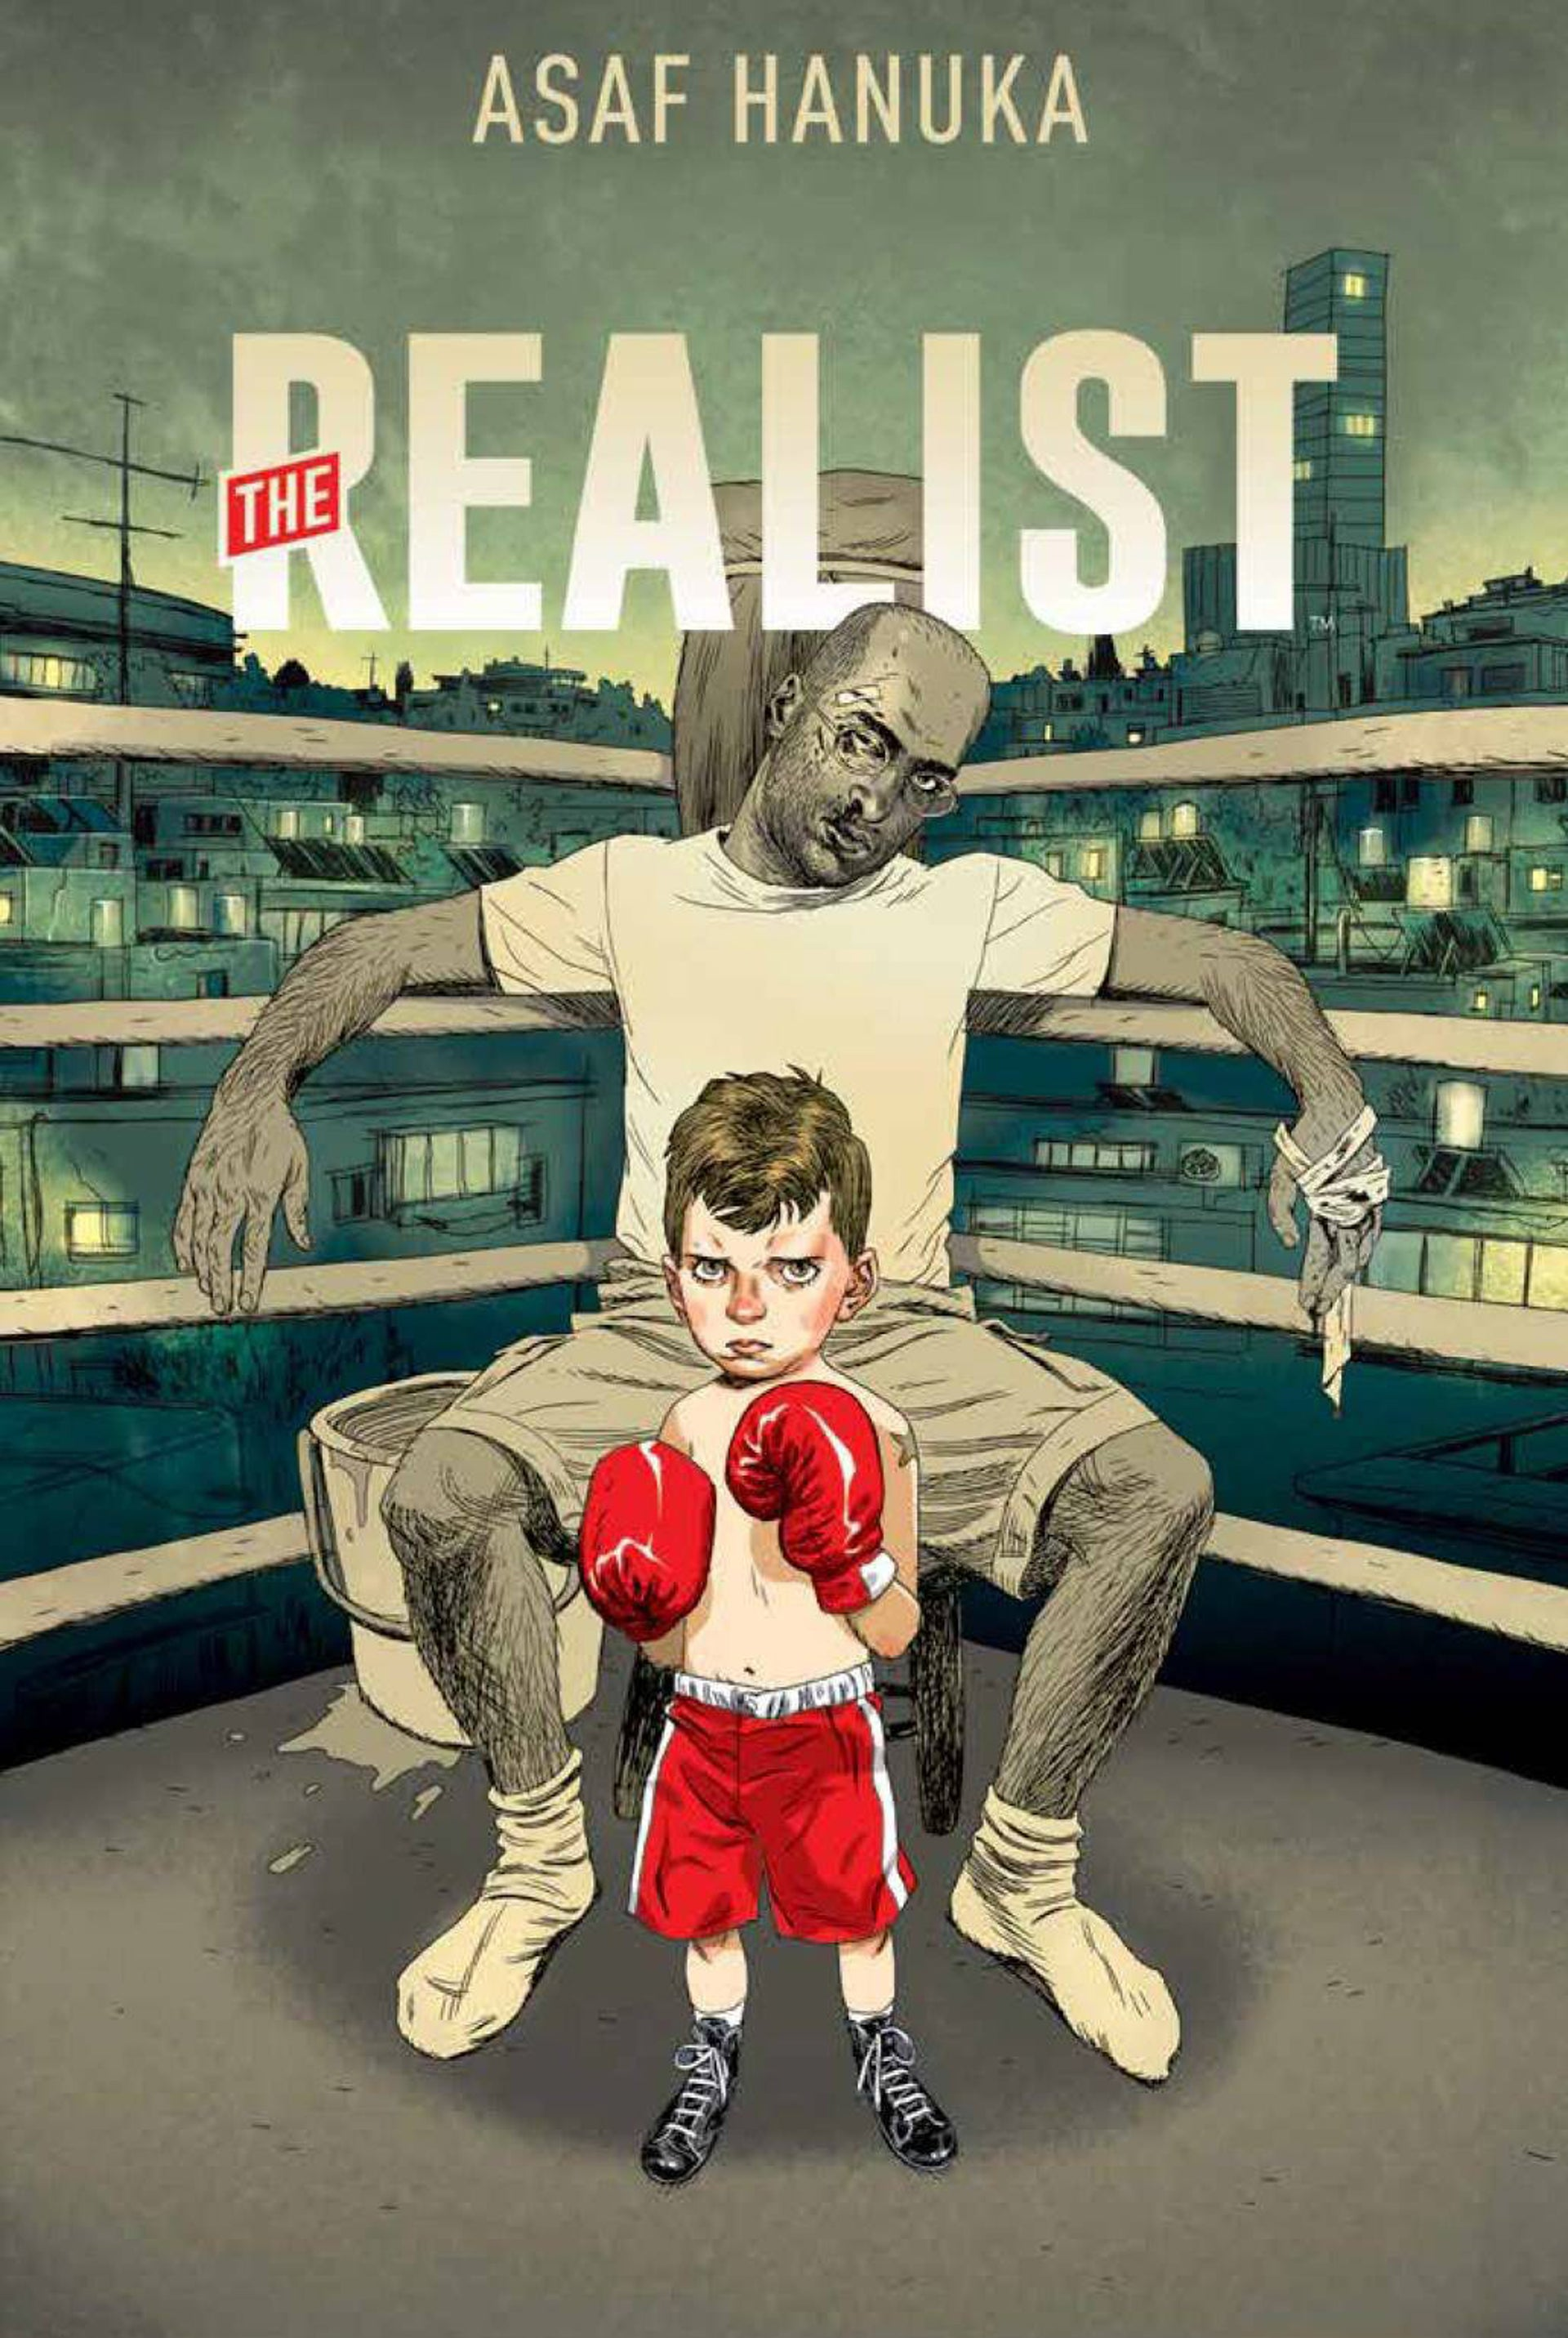 The cover of Asaf Hanuka's book, 'THE REALIST'.